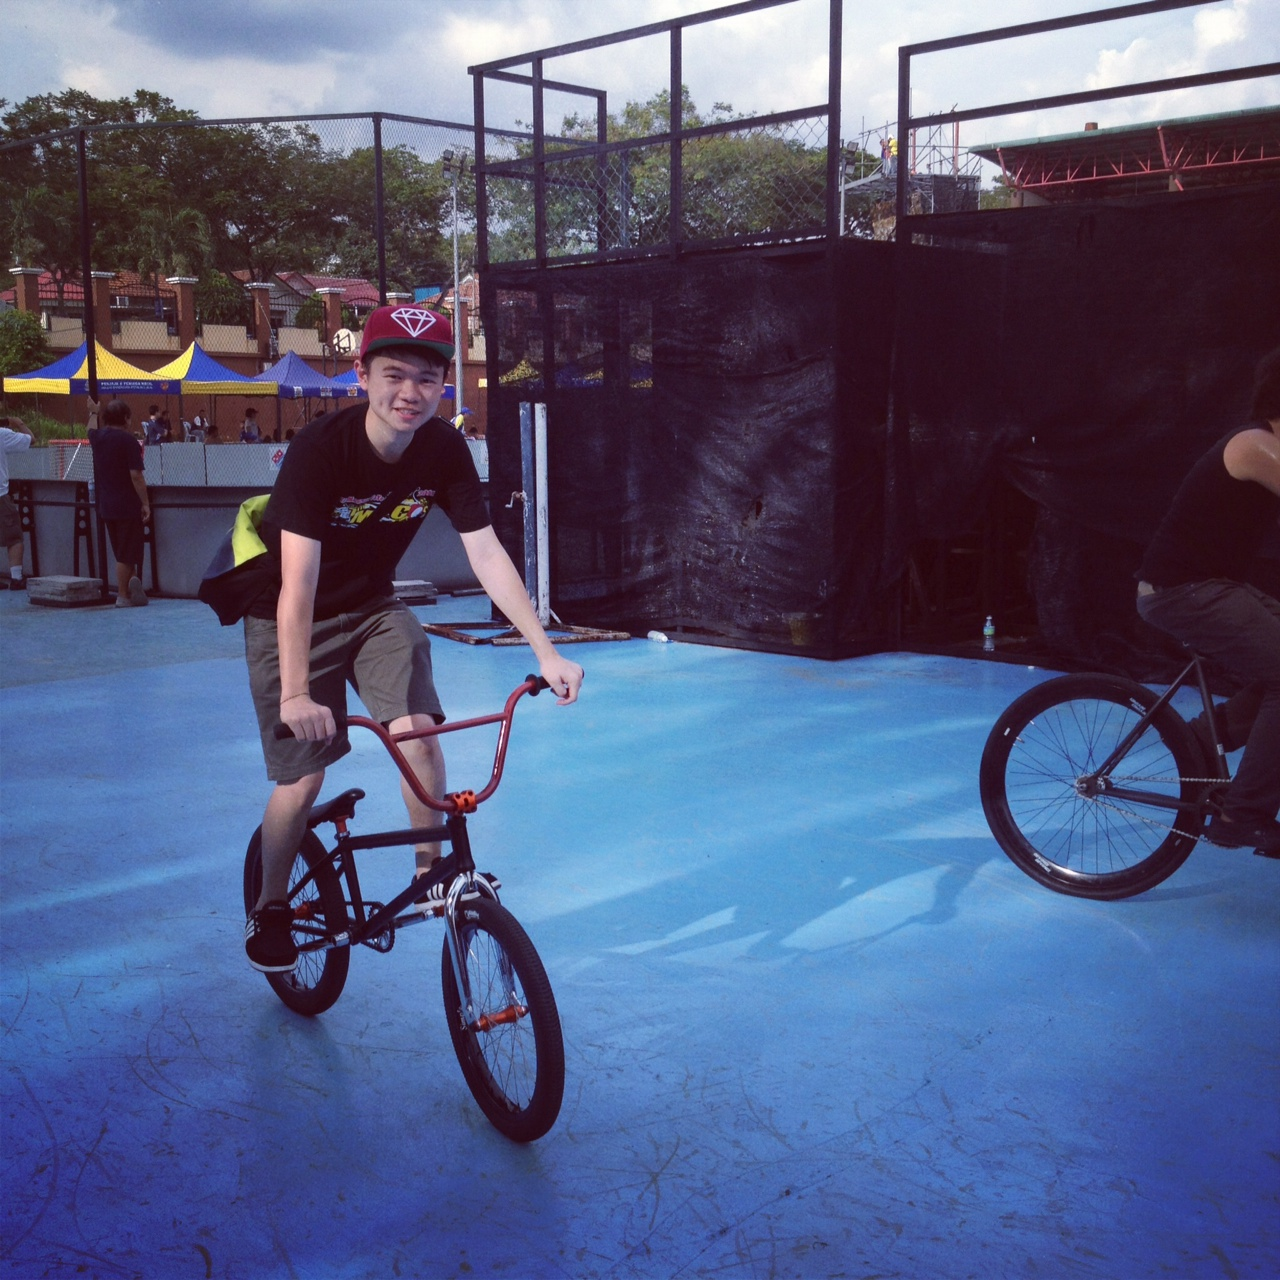 BMX AT ASSUNTA SKATE PARK